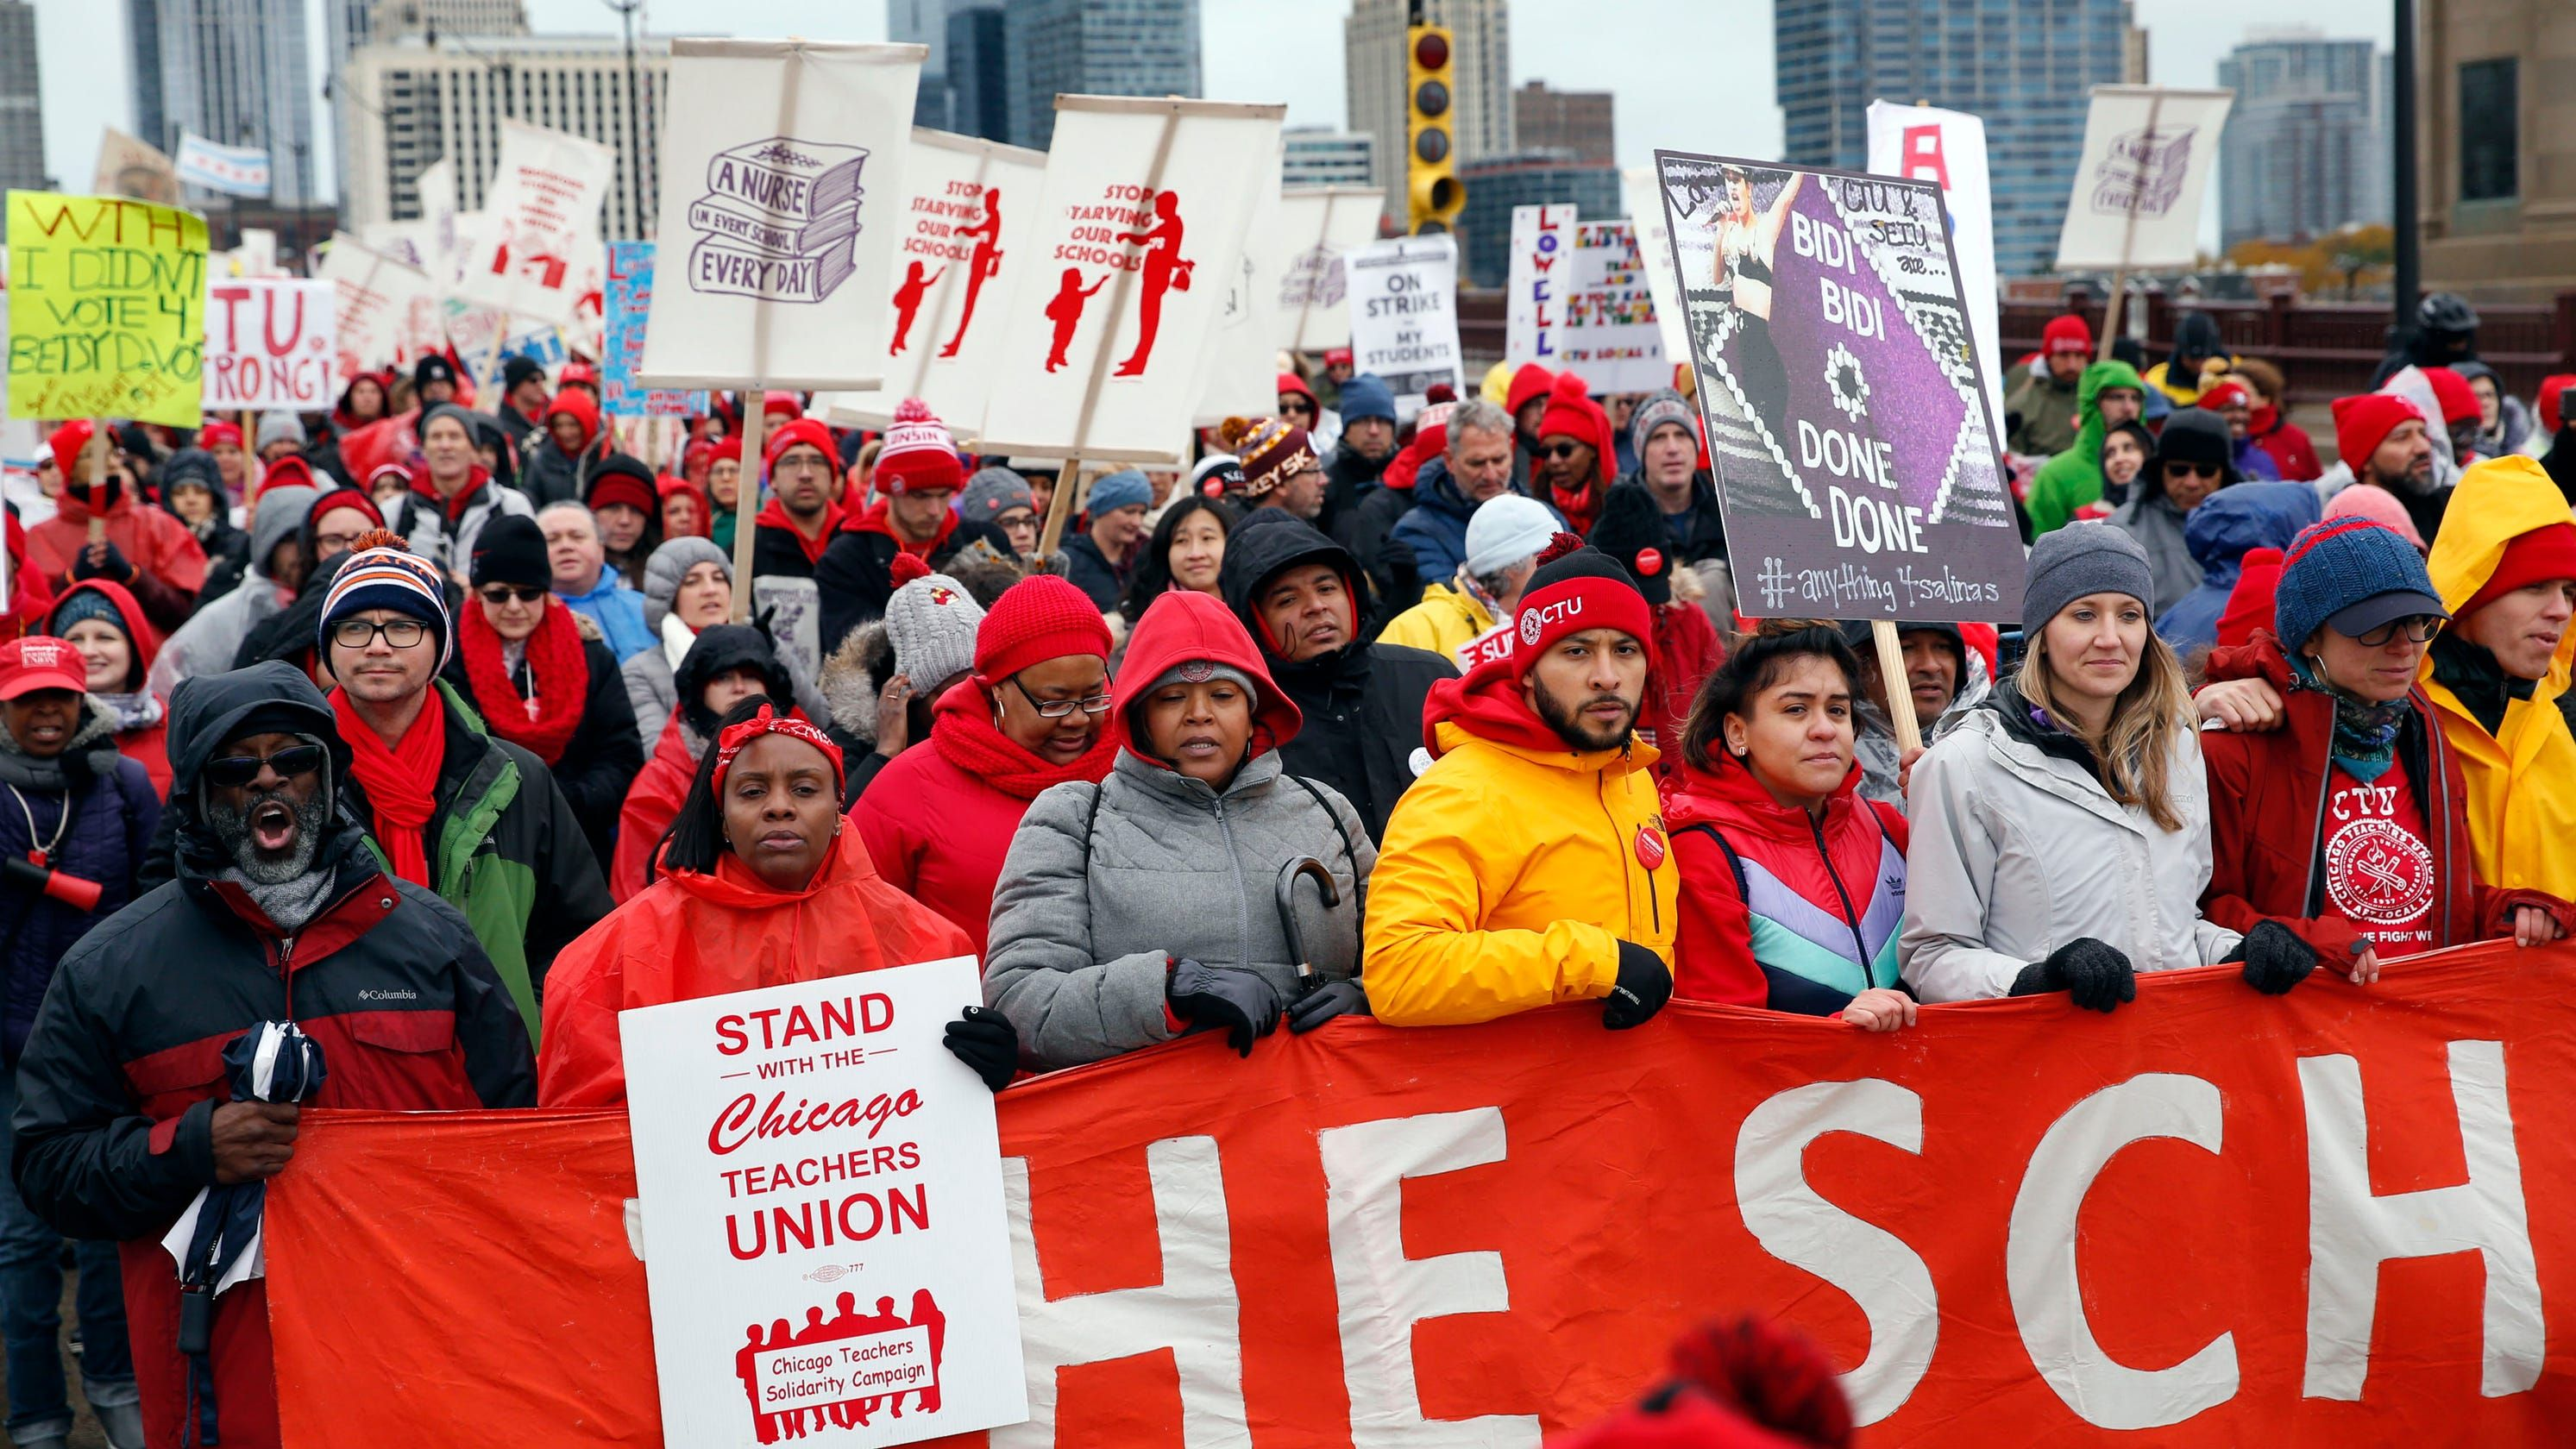 Chicago Teachers Strike Ends After 11 Days Cps Will Have 5 Make Up Days Of School Teachers Strike Teacher Union Chicago Teachers Union